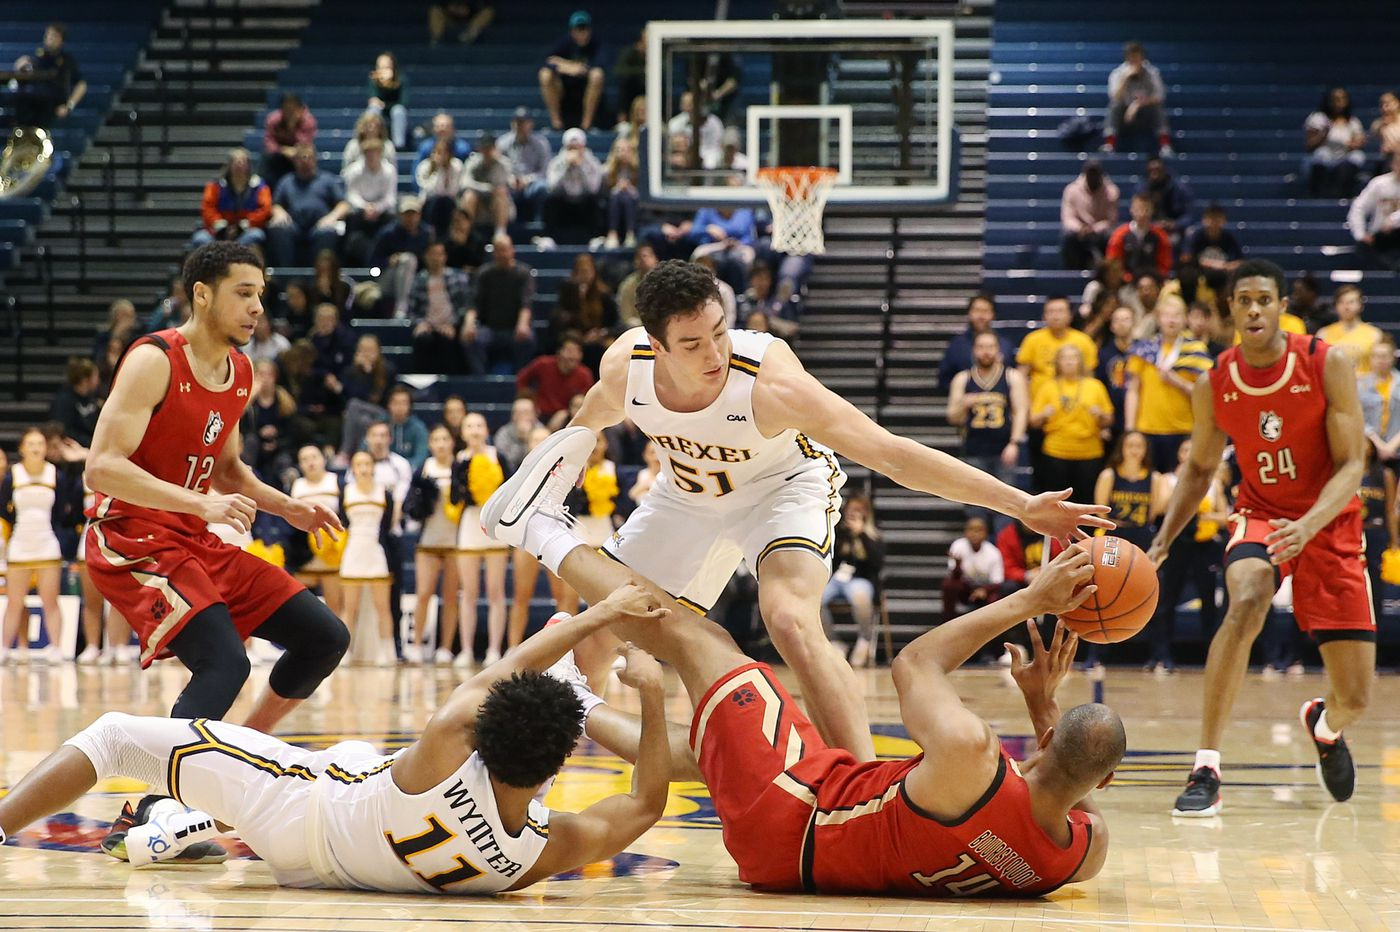 City Six basketball: Drexel men fall to 0-2 in CAA play